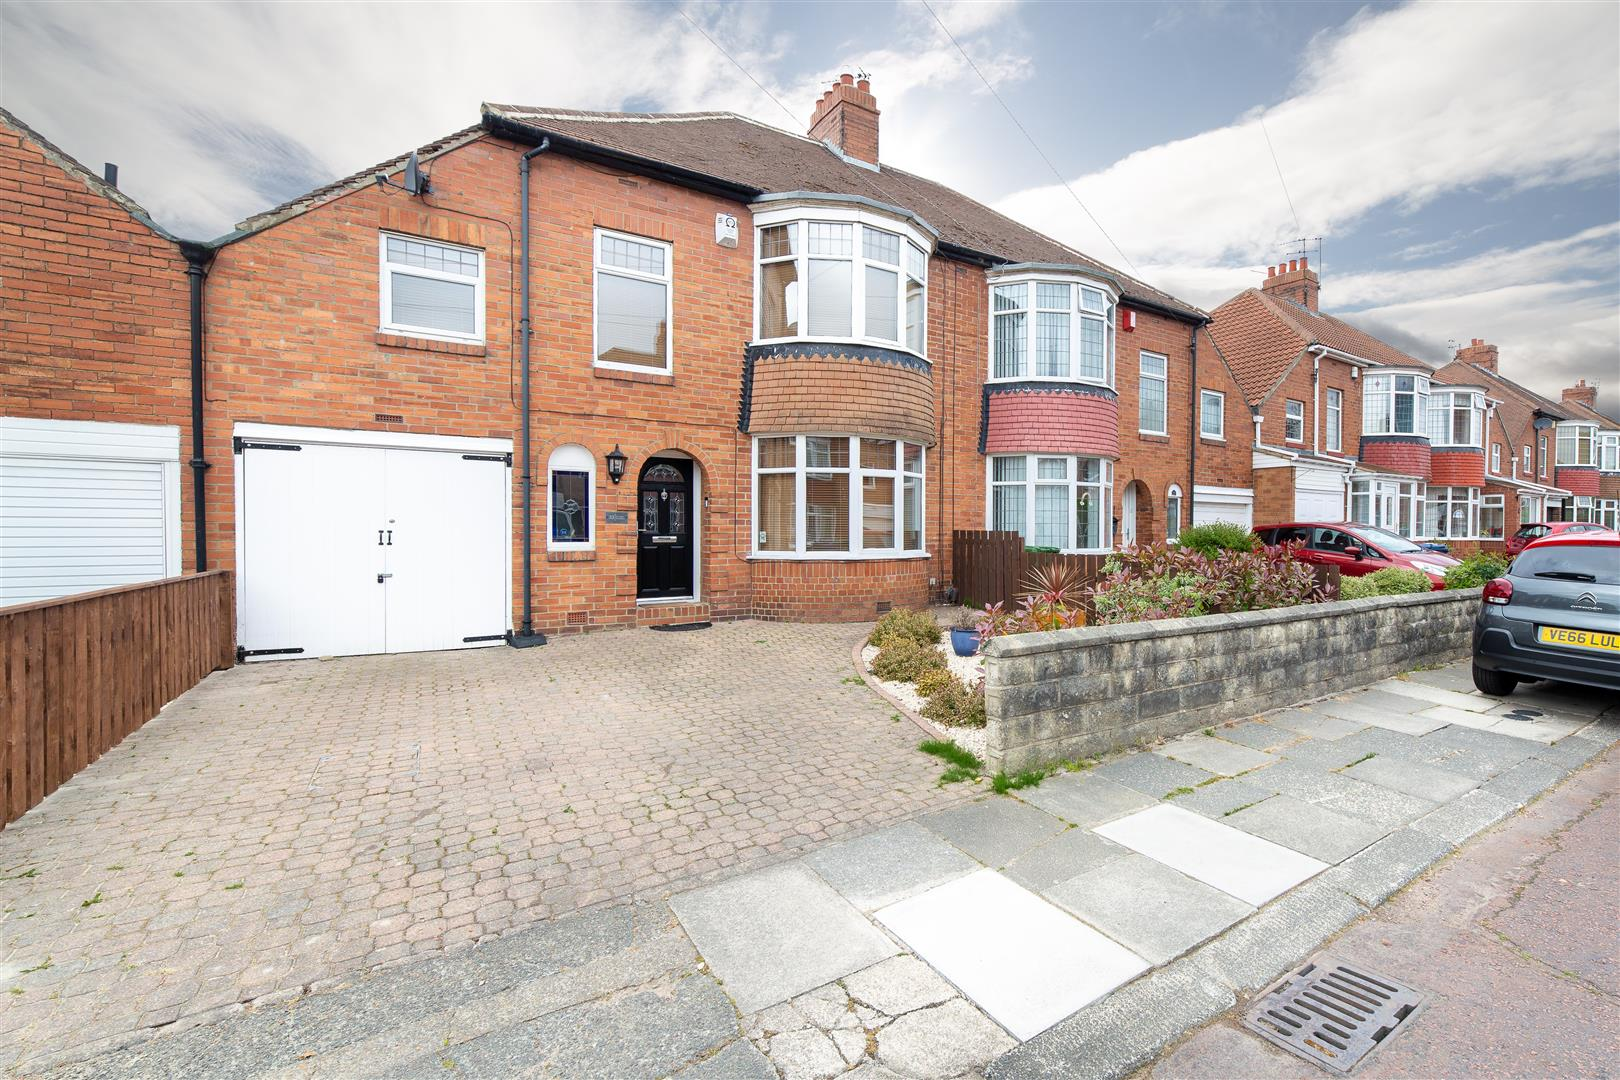 3 bed semi-detached house for sale in Newcastle Upon Tyne, NE7 7LL - Property Image 1